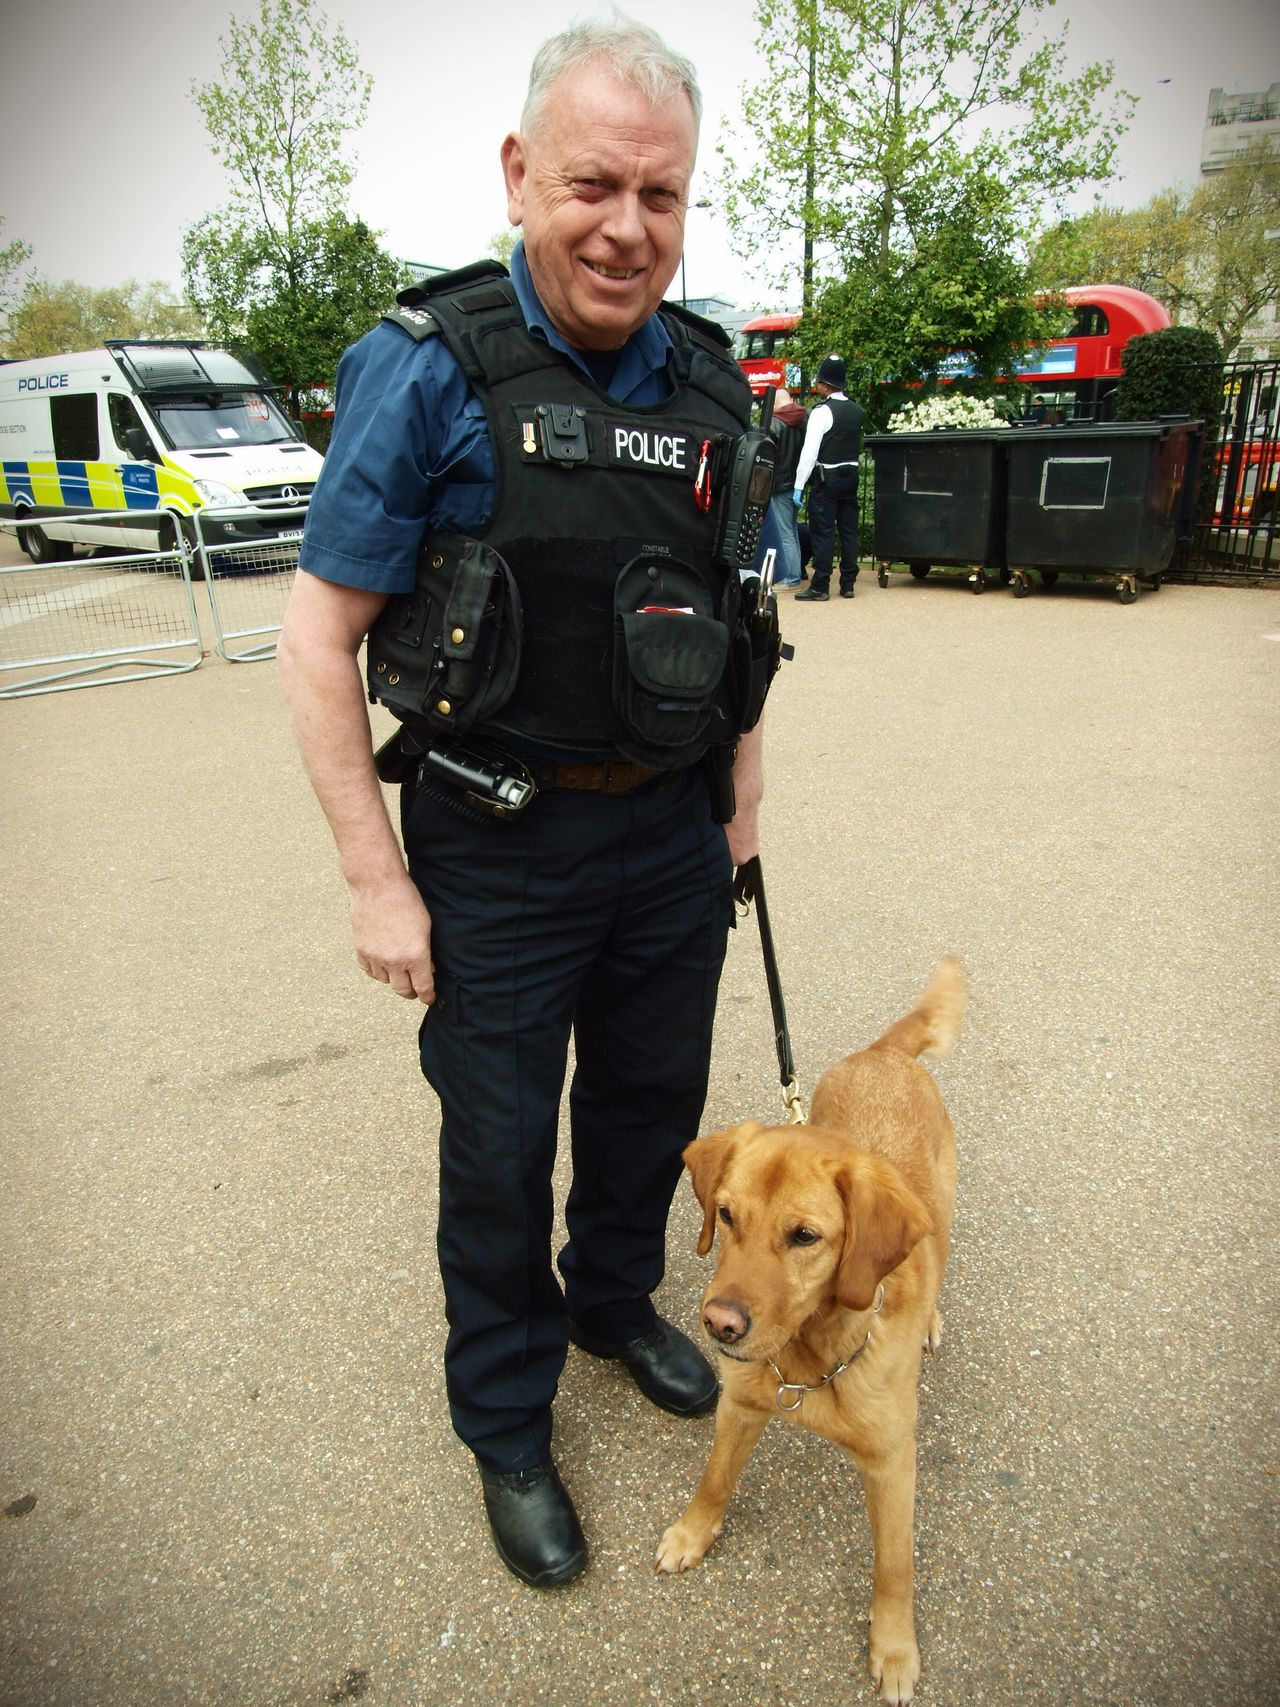 London News PC a Nightingale and Millie the drug sniffer dog conducting searches at the London 420 Rally to legalise Canabis 20-04-2017 Hyde Park Photojournalism London Lifestyle Steve Merrick Stevesevilempire Olympus Zuiko Drug Sniffer Dogs Metropolitan Police Canabisculture Canabbis London 420 Rally Canabis